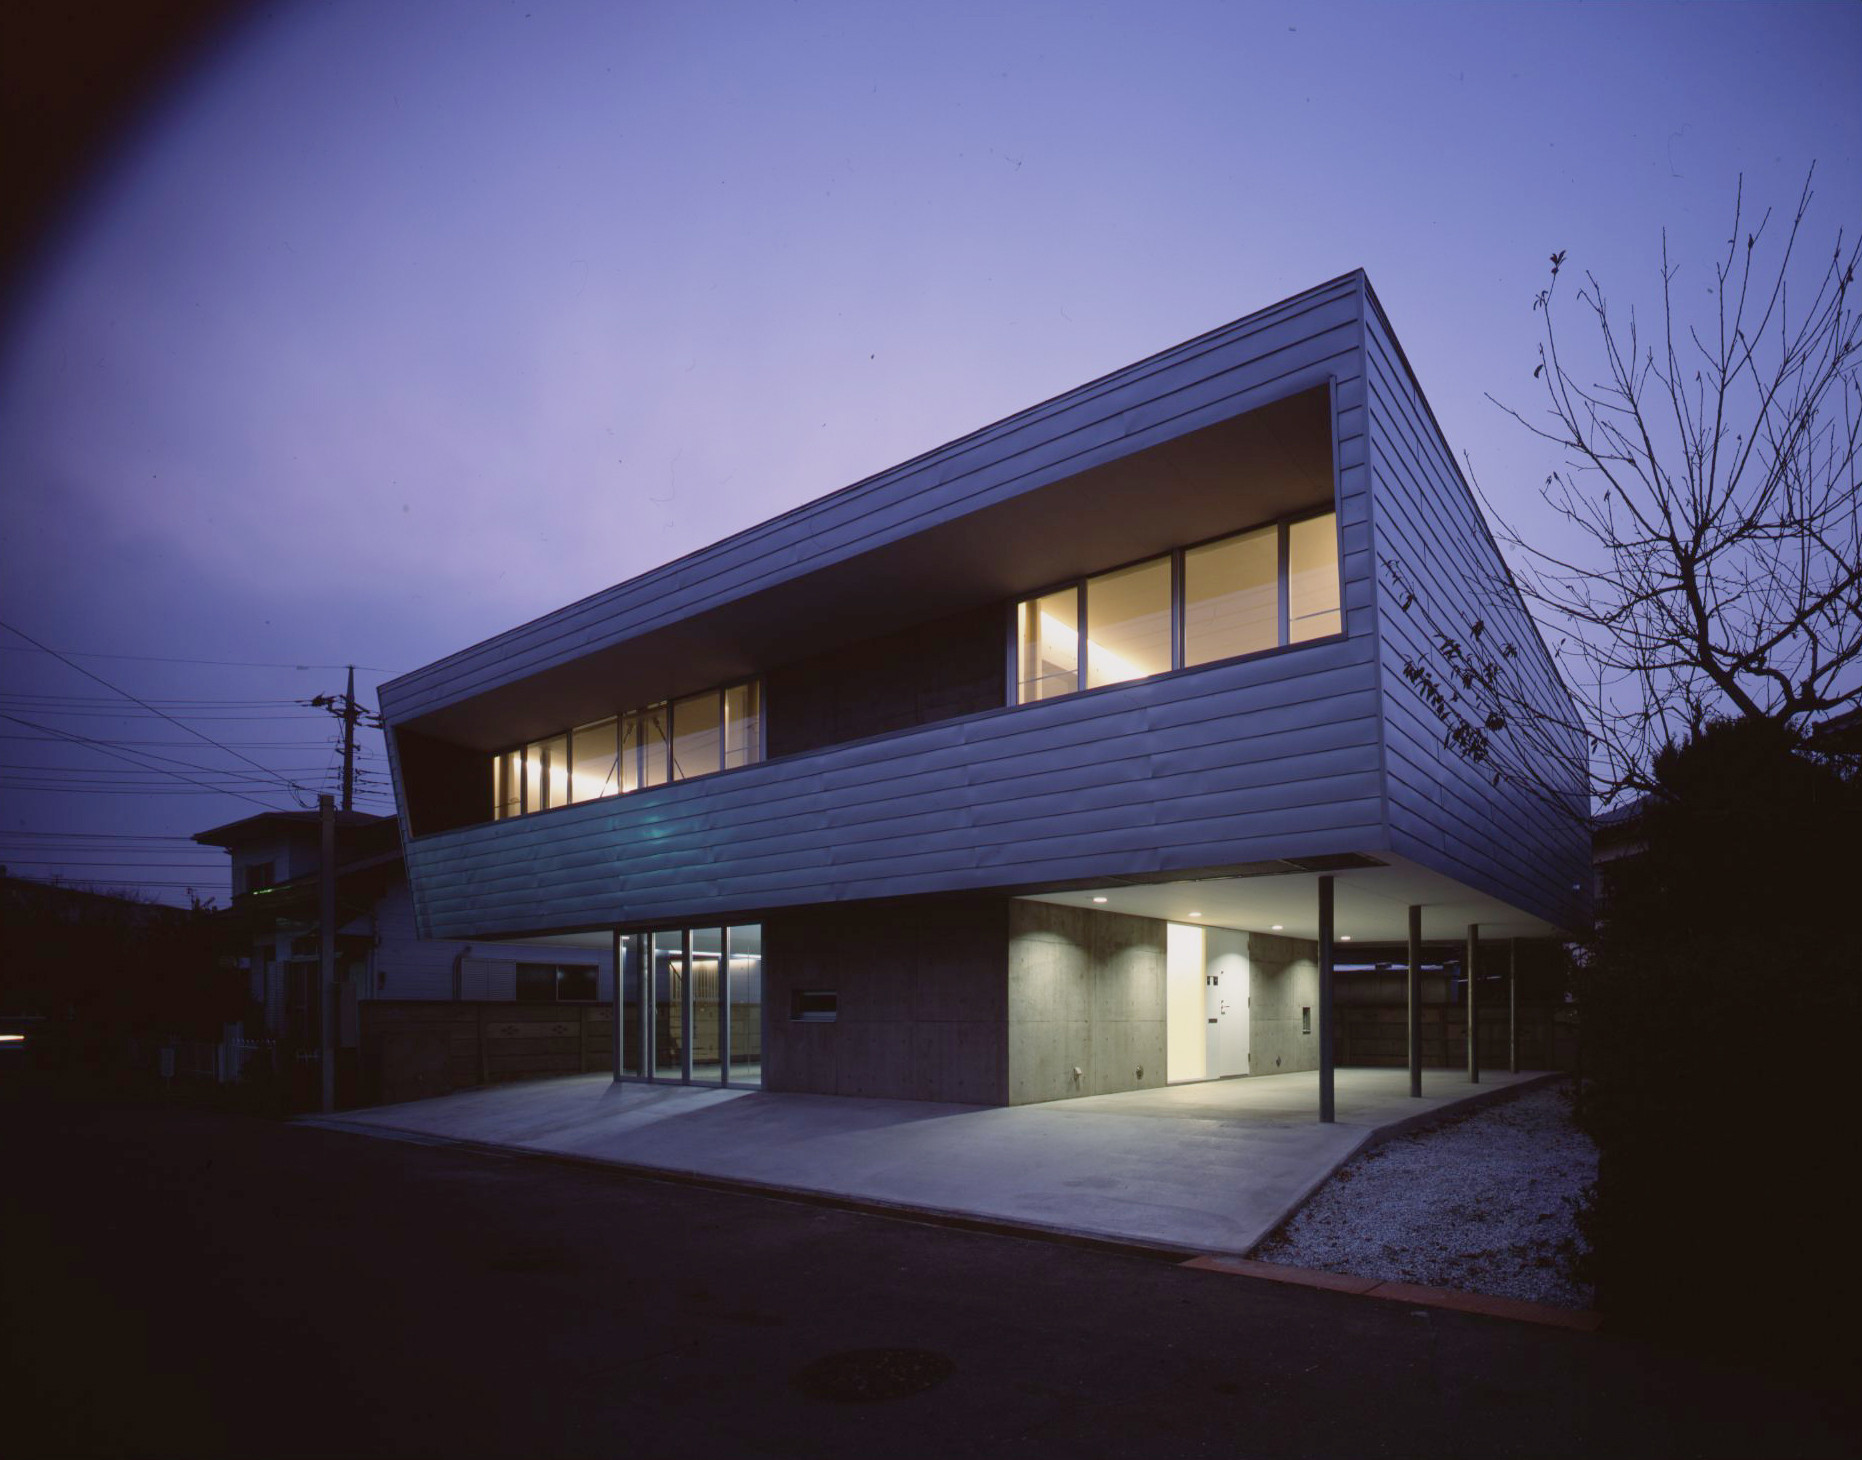 House in Sakado / LEVEL Architects, Courtesy of LEVEL Architects